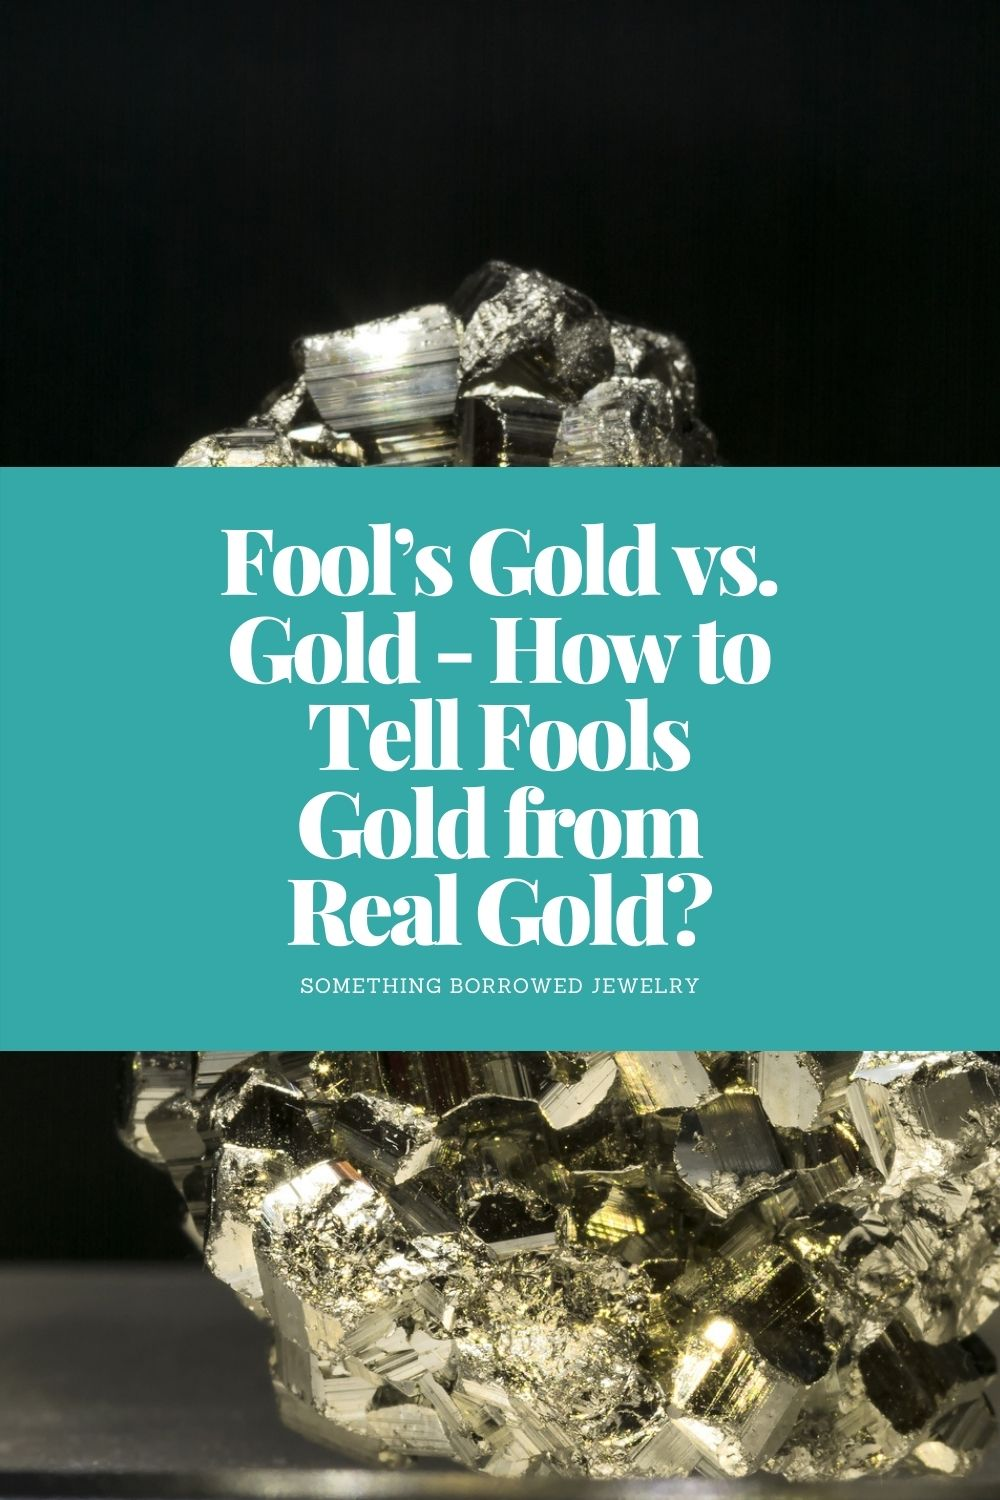 Fool's Gold vs. Gold - How to Tell Fools Gold from Real Gold pin